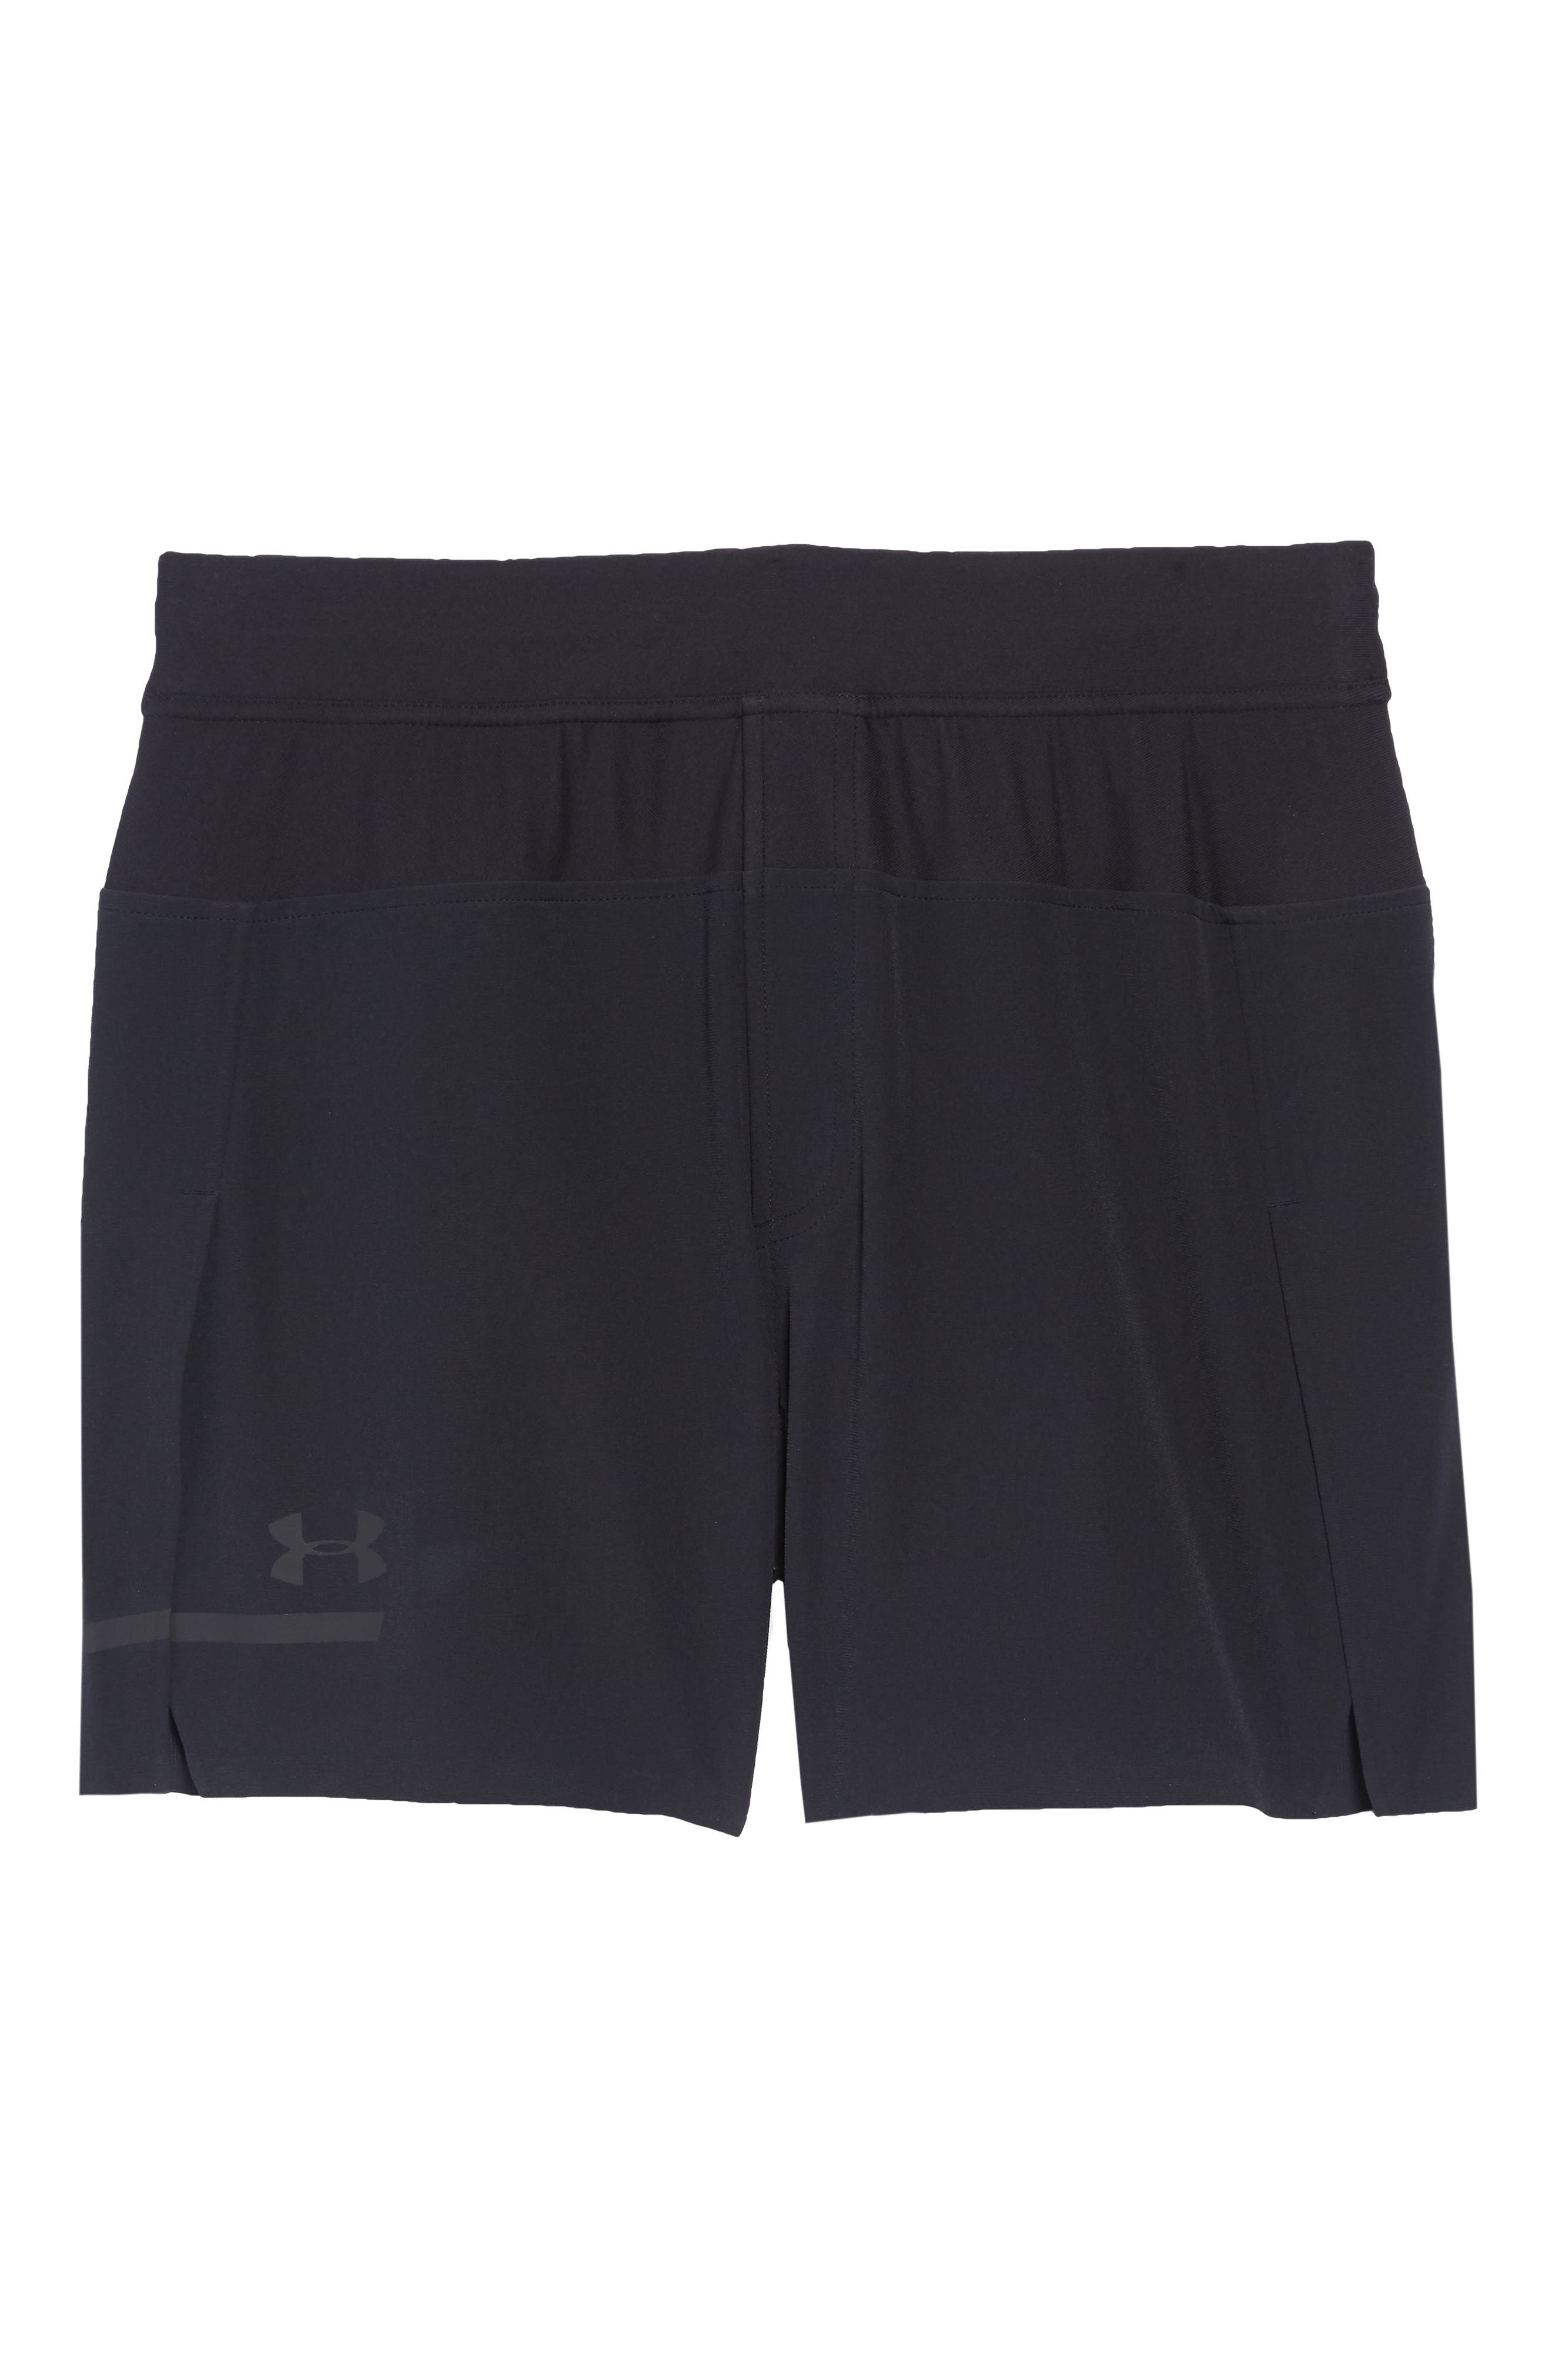 Perpetual Fitted Shorts,                             Alternate thumbnail 6, color,                             BLACK